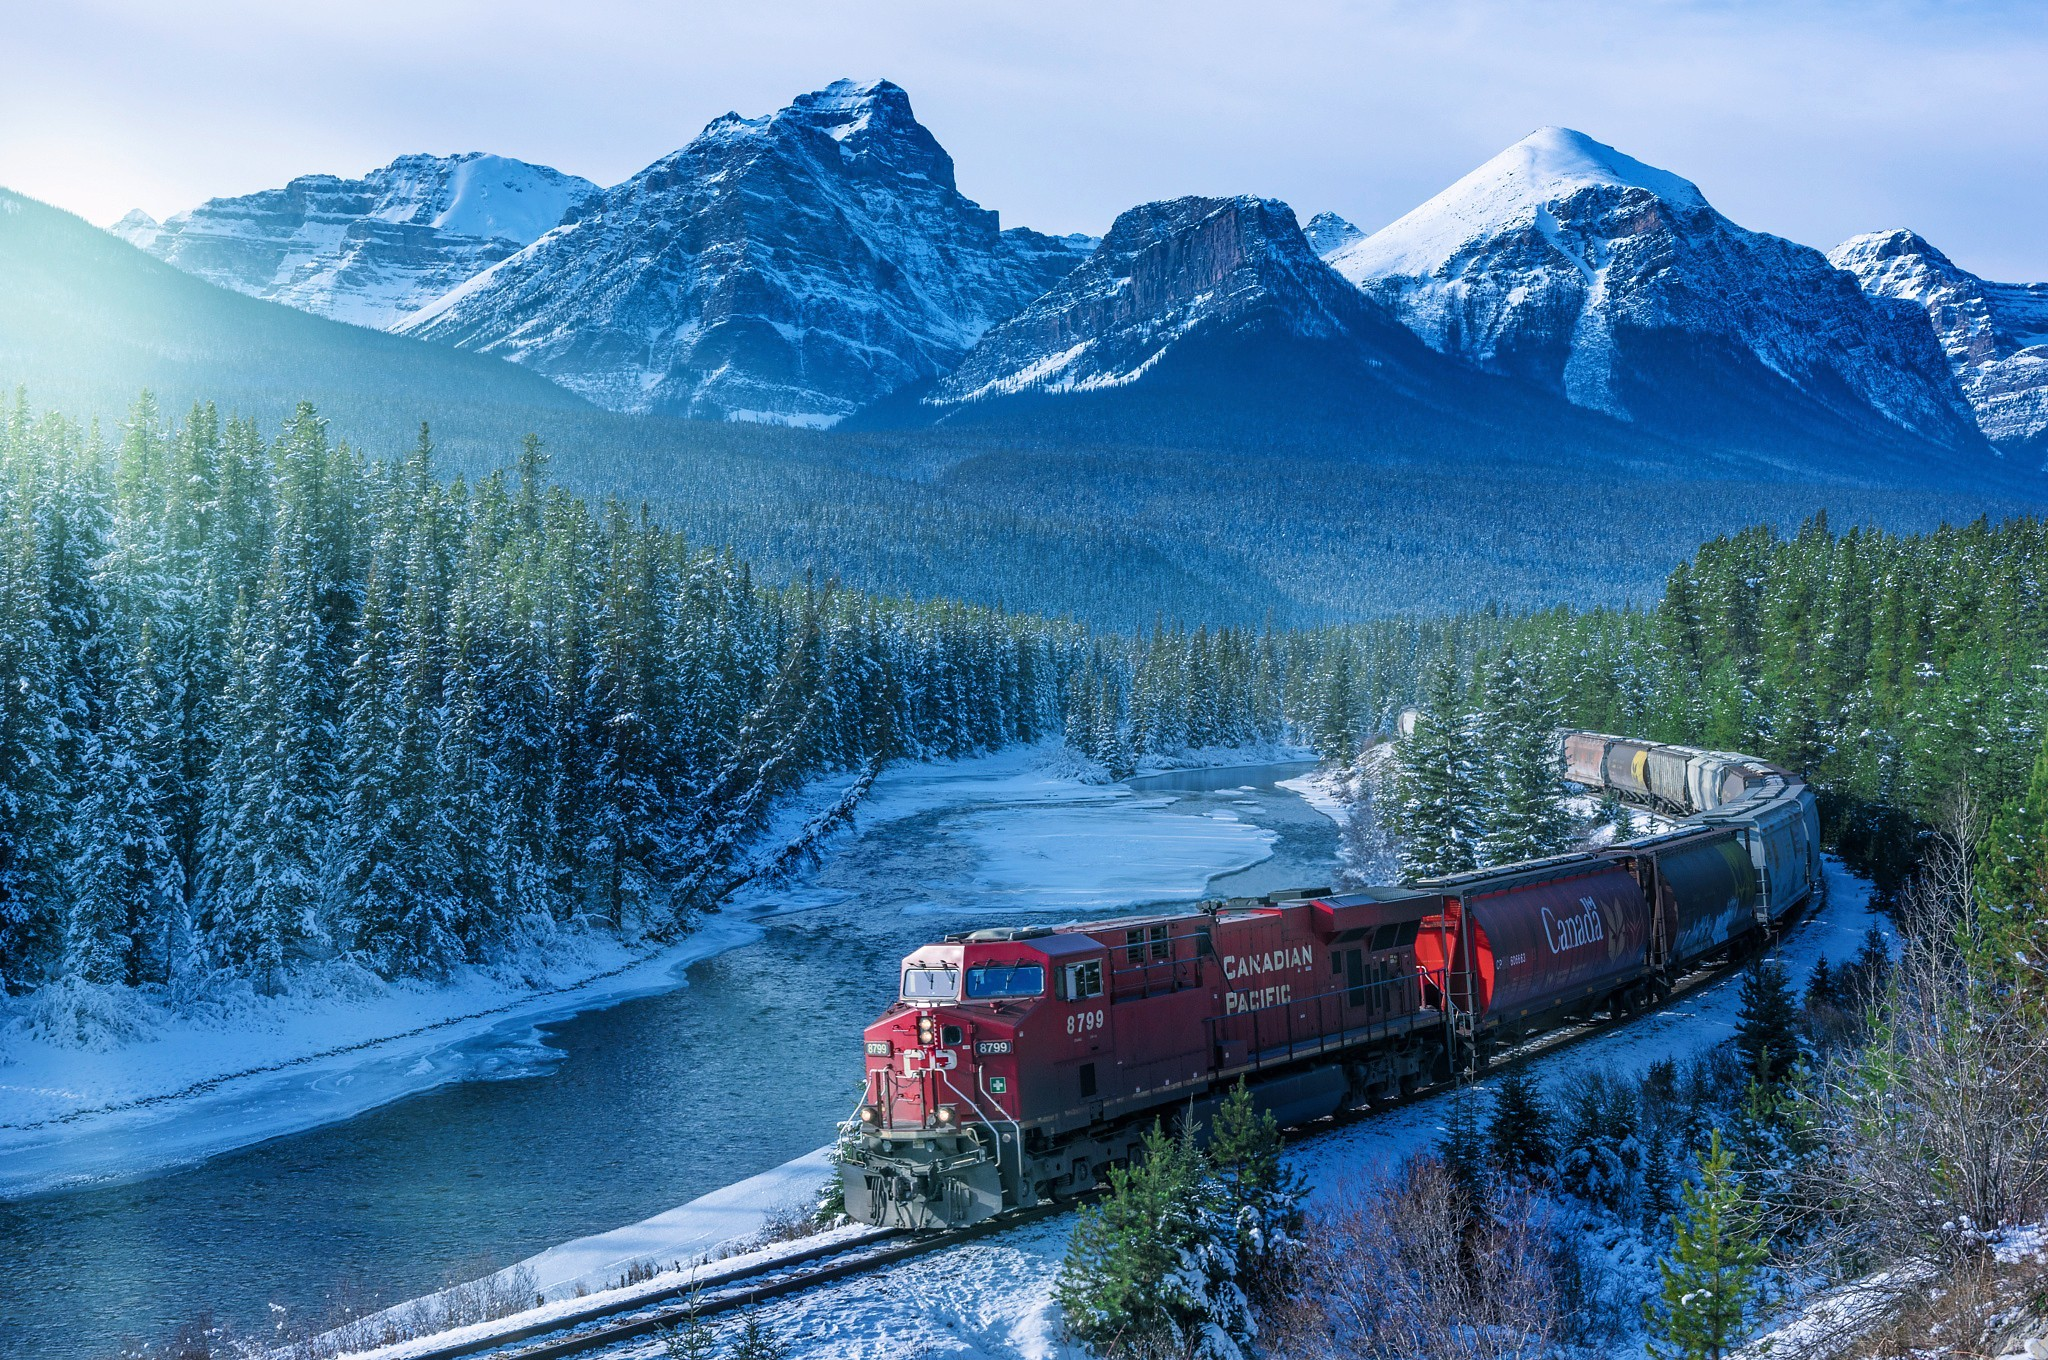 2048x1360 The Canadian Pacific Train making the morning commute along the Bow River  in Alberta, Canada.